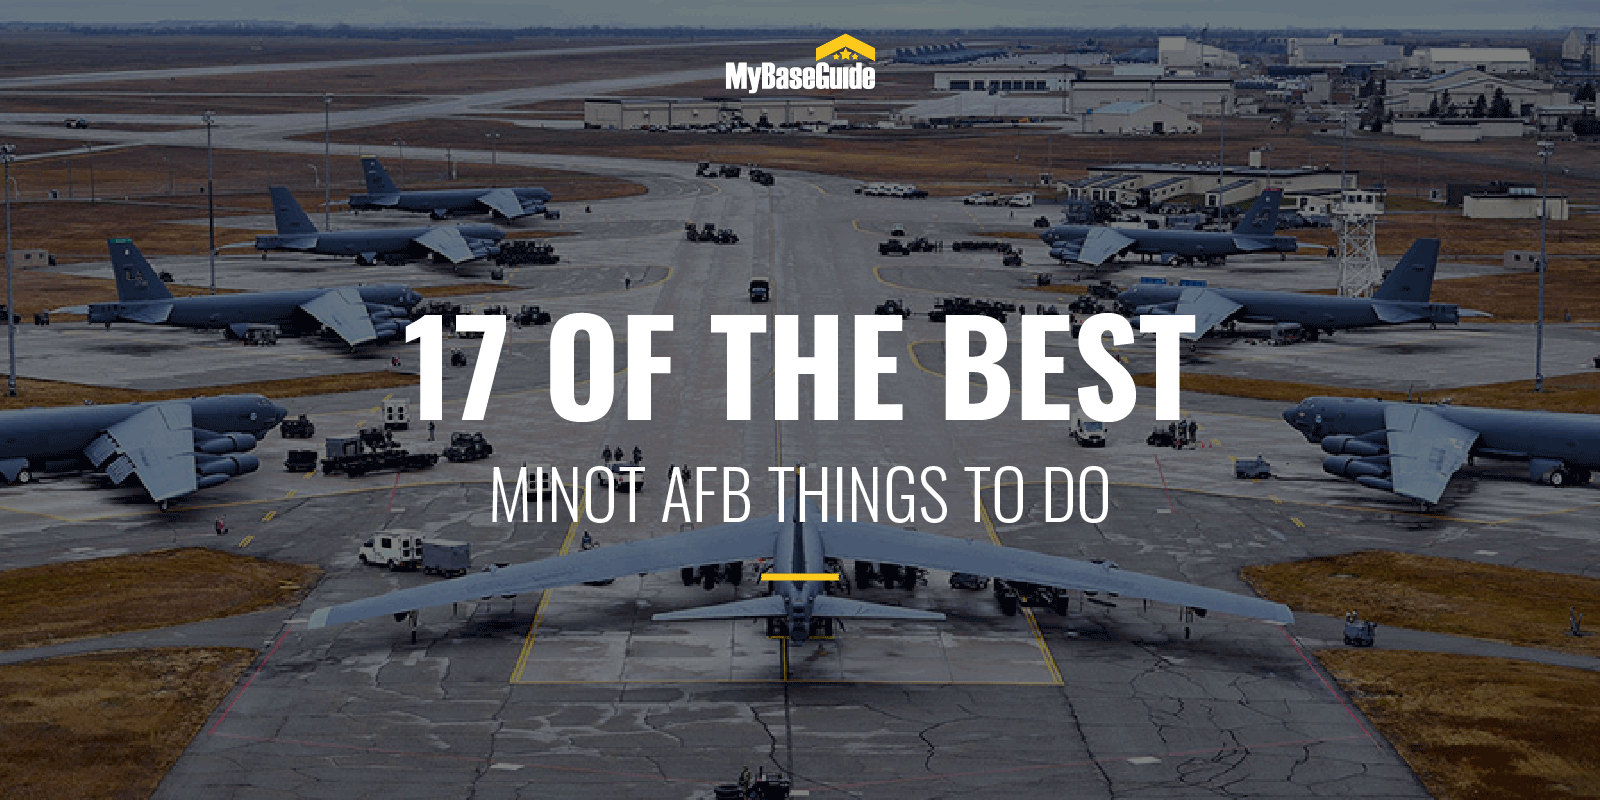 17 Of the Best Minot AFB Things to Do